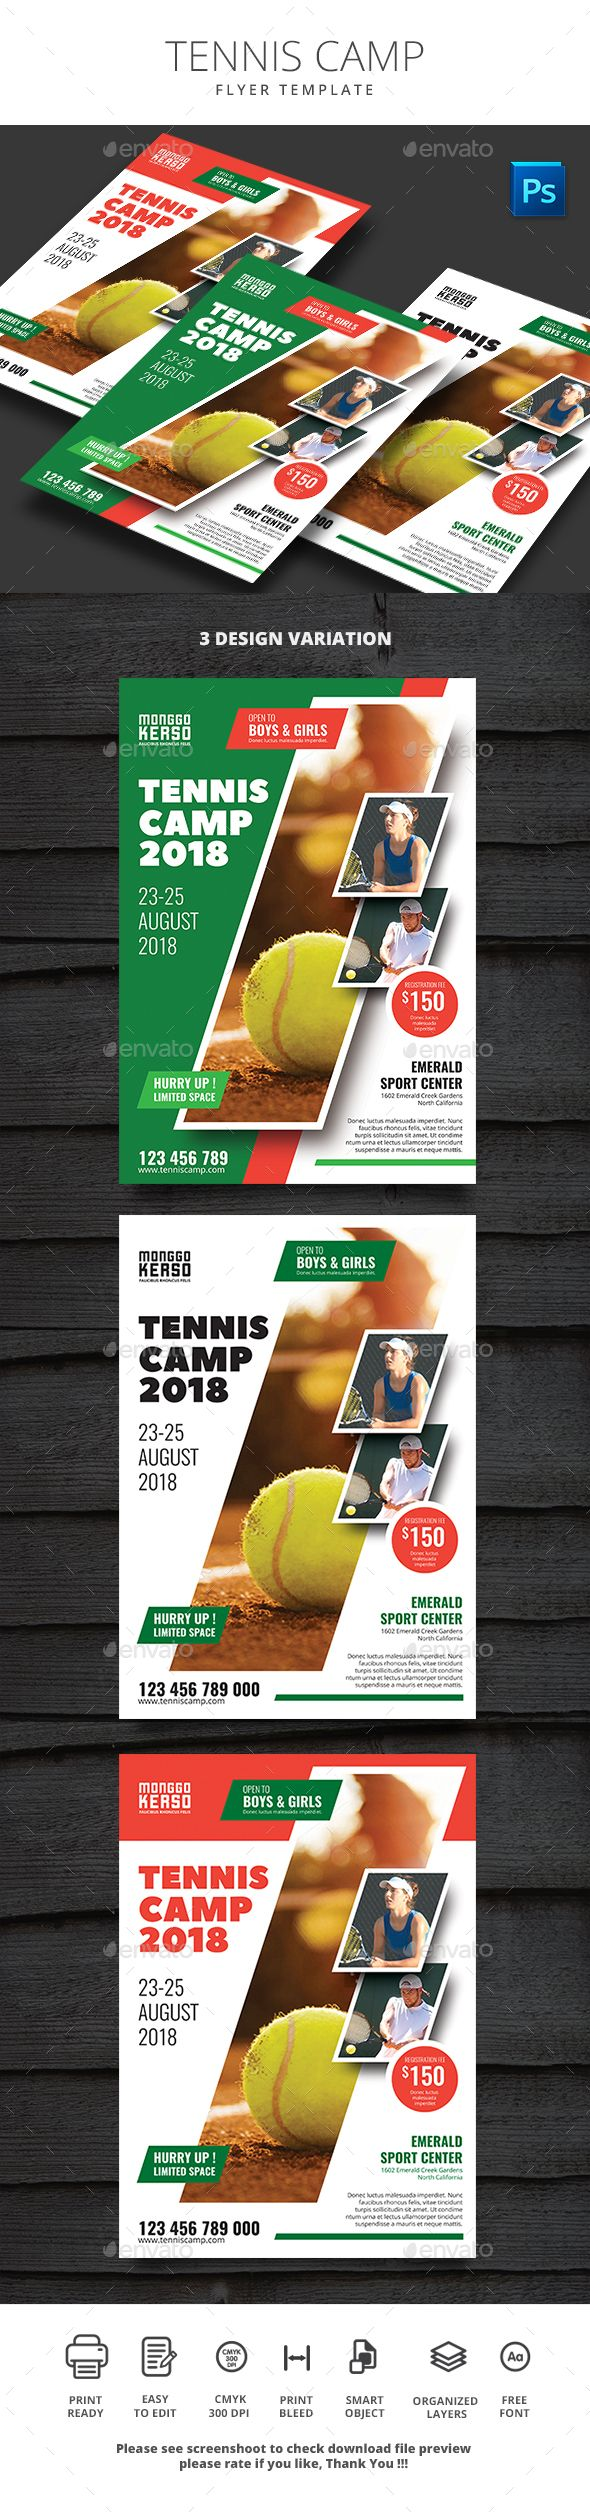 Tennis Camp Flyer File Features : Size A4 210x290mm   Bleed area CMYK / 300 dpi Easy to edit text Well organized PSD file 3 Alternative colors Change image via smart objects Photos are not included Please see screenshoot to check download file preview Free Fon